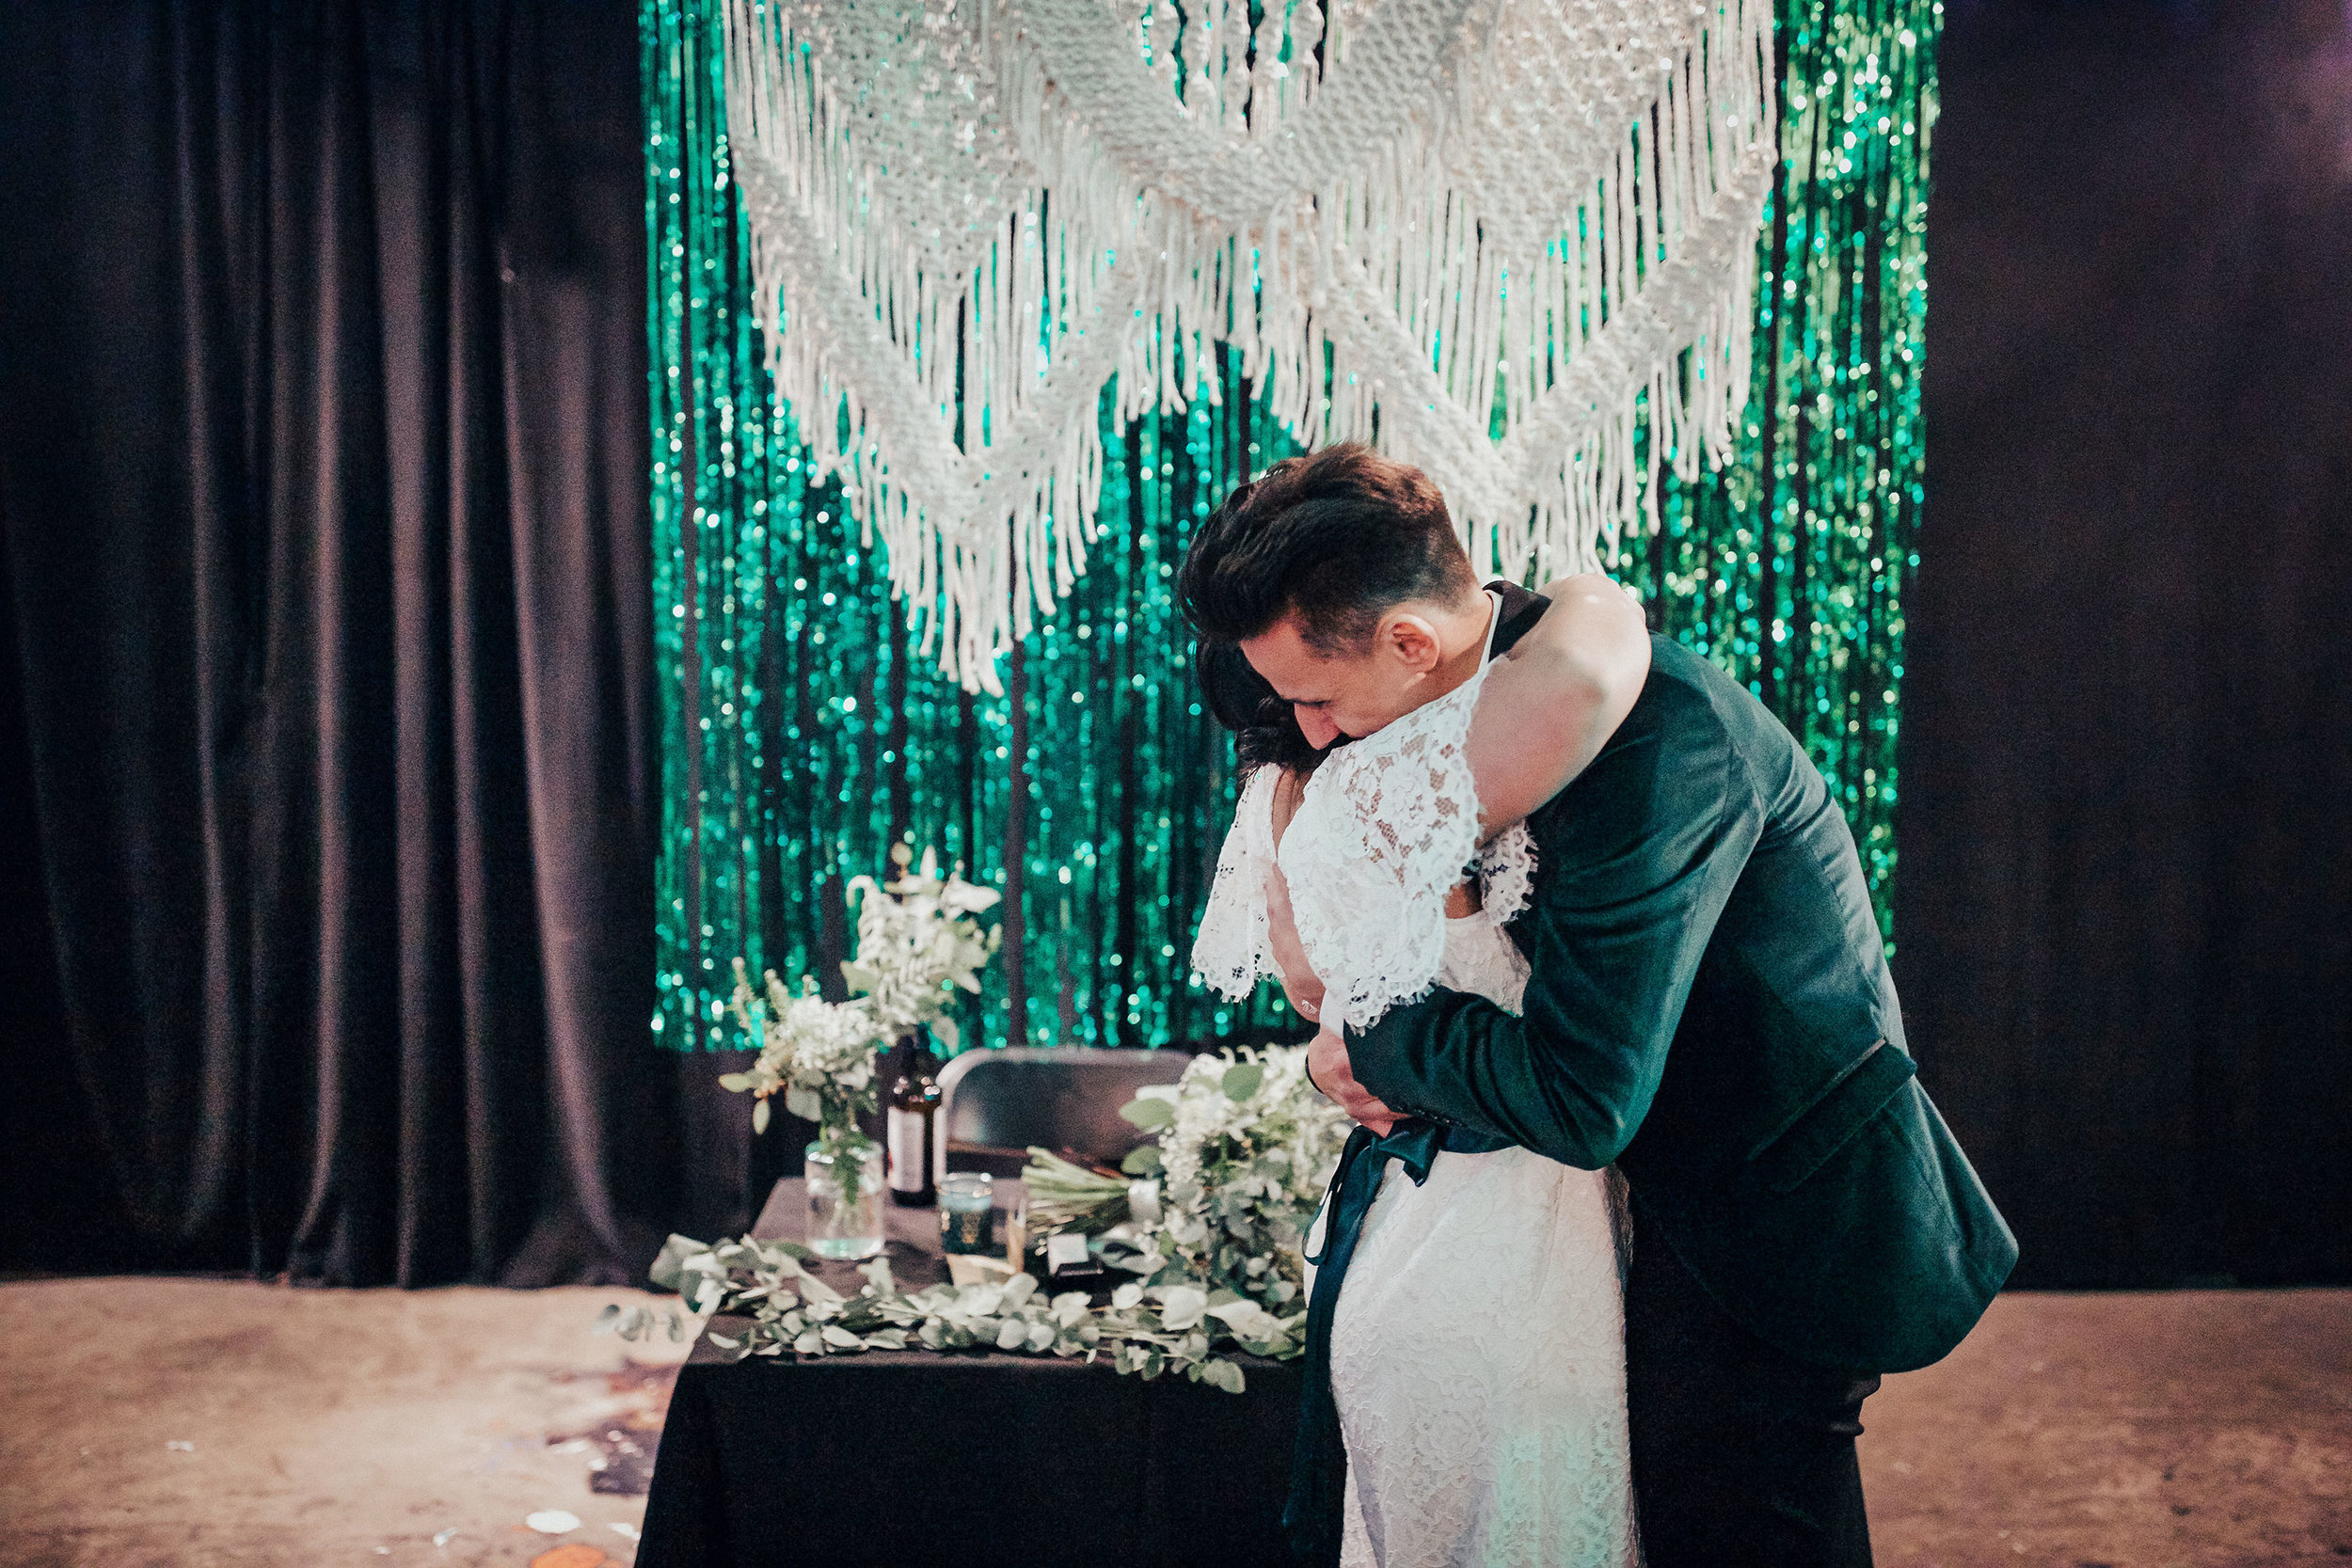 DRYGATE_WEDDING_PHOTOGRAPHER_PJ_PHILLIPS_WEDDING_PHOTOGRAPHY_59.jpg